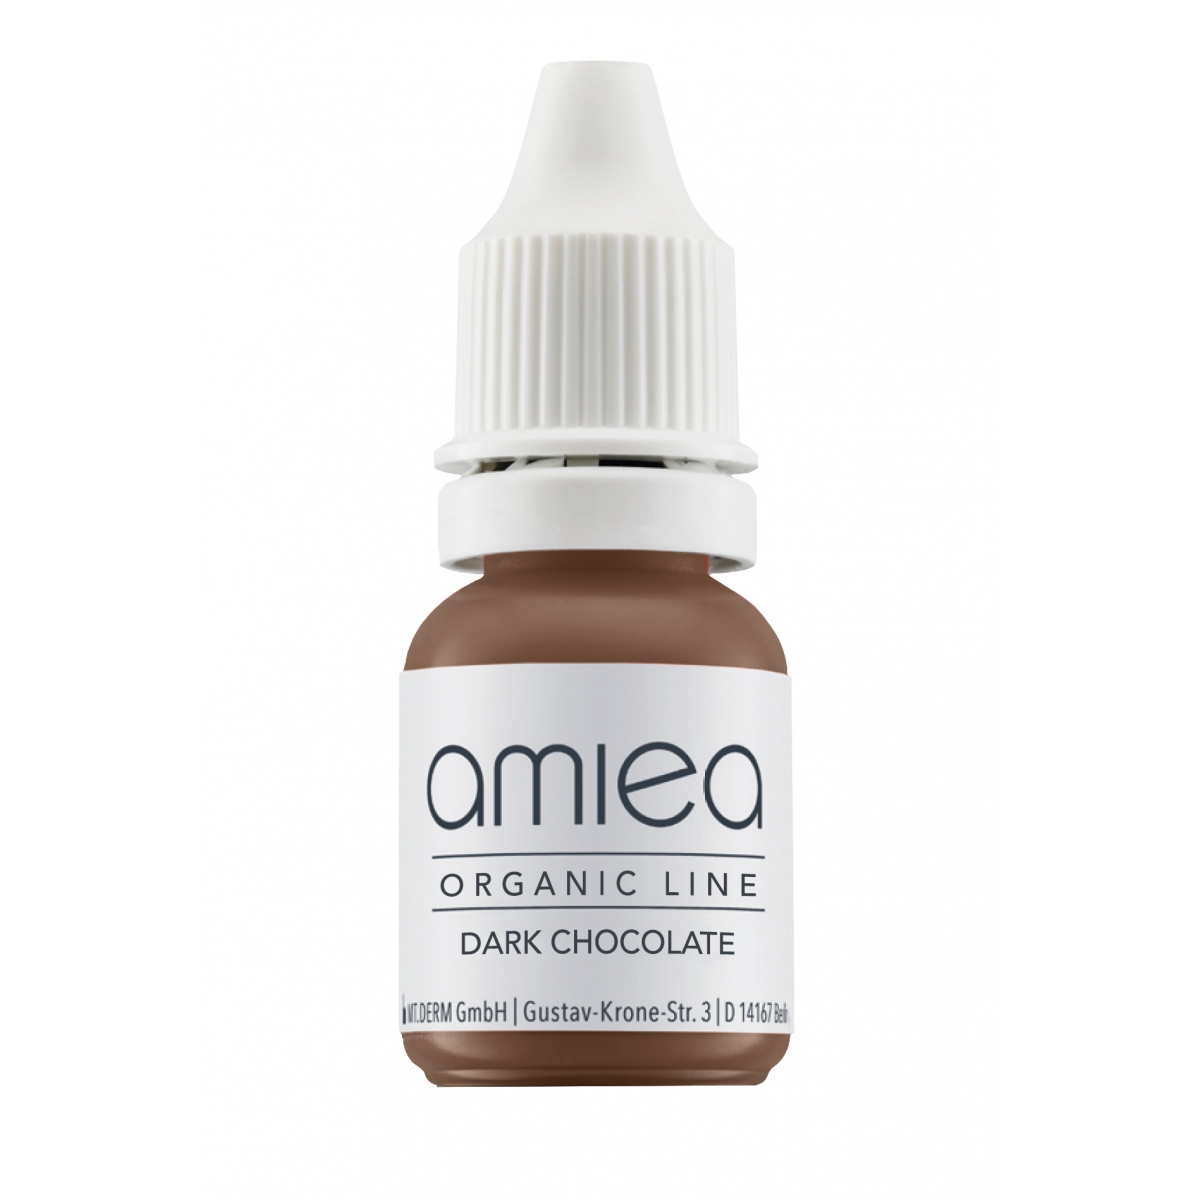 ORGANIC LINE (10ml) - PIGMENT DARK CHOCOLATE ORGANICLINE AMIEA (10 ml)